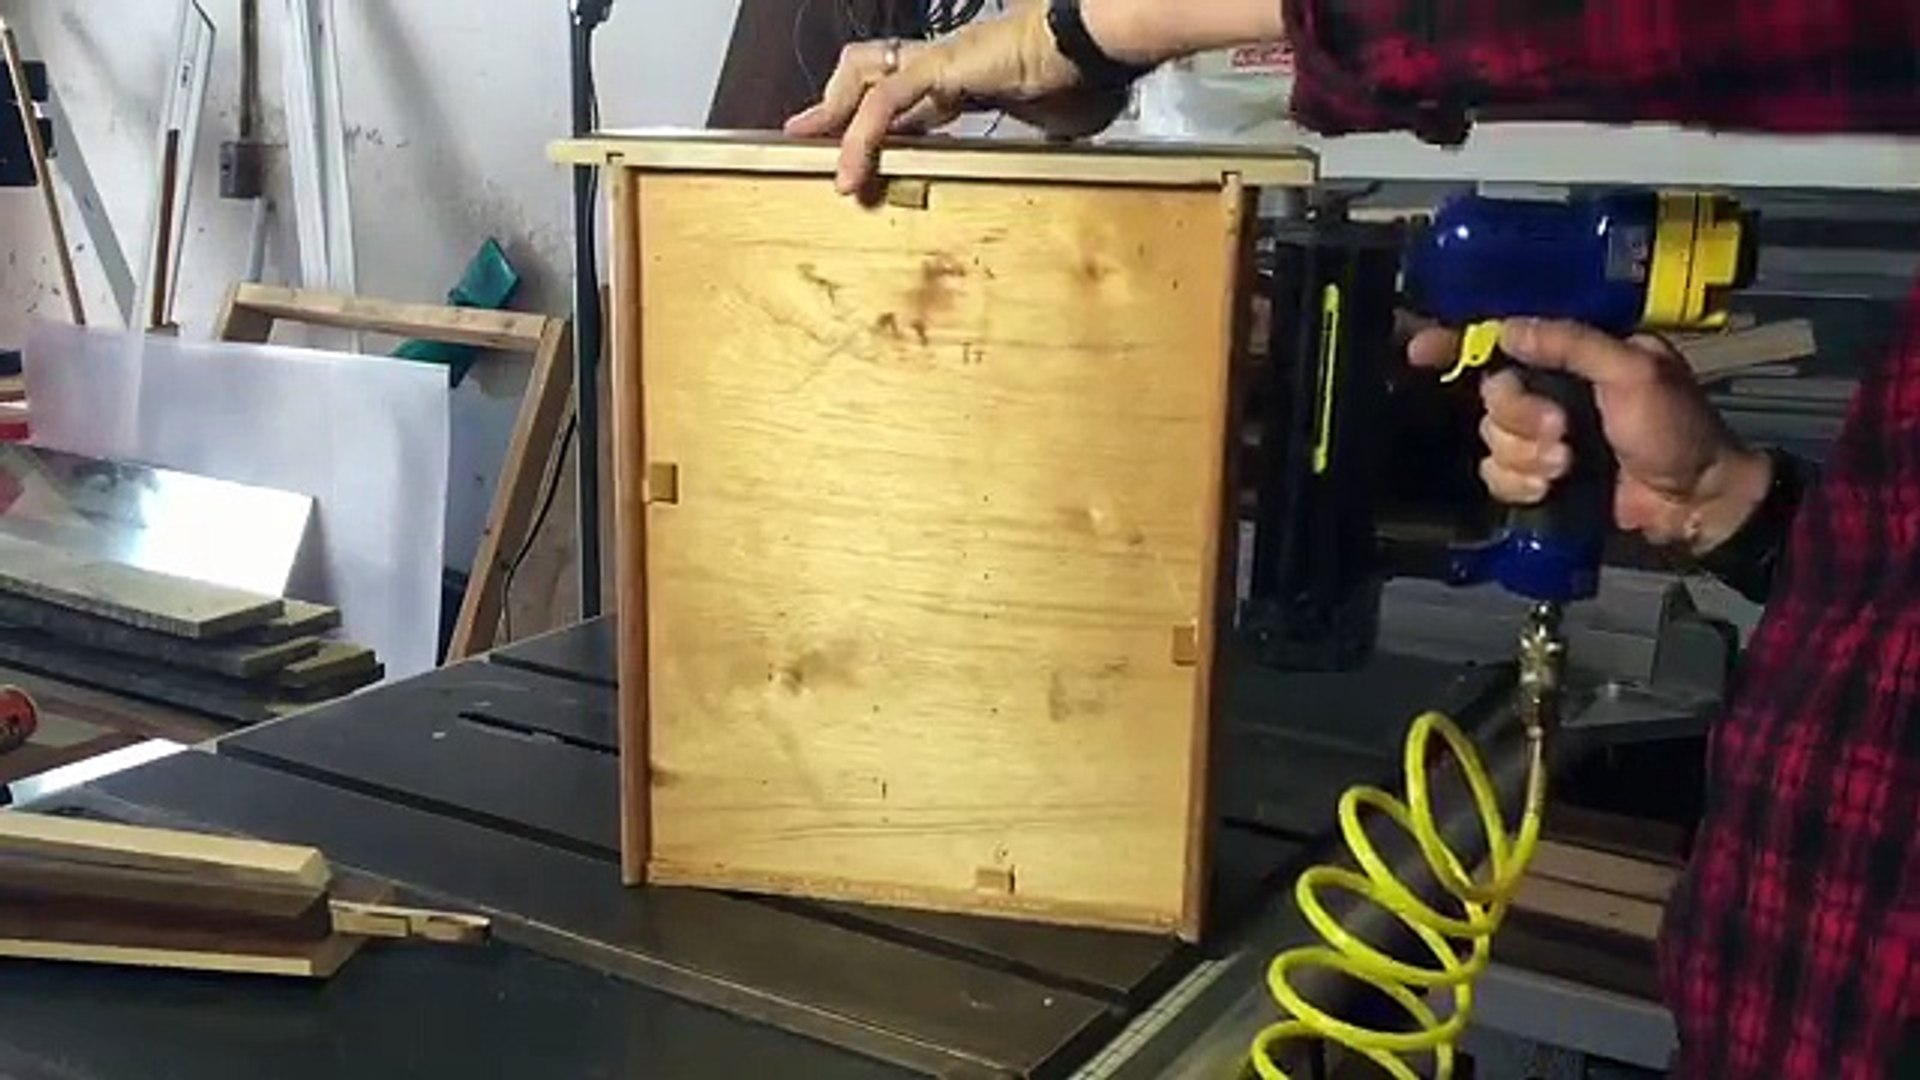 007 Recycle an Old Desk Drawer into a Shelf